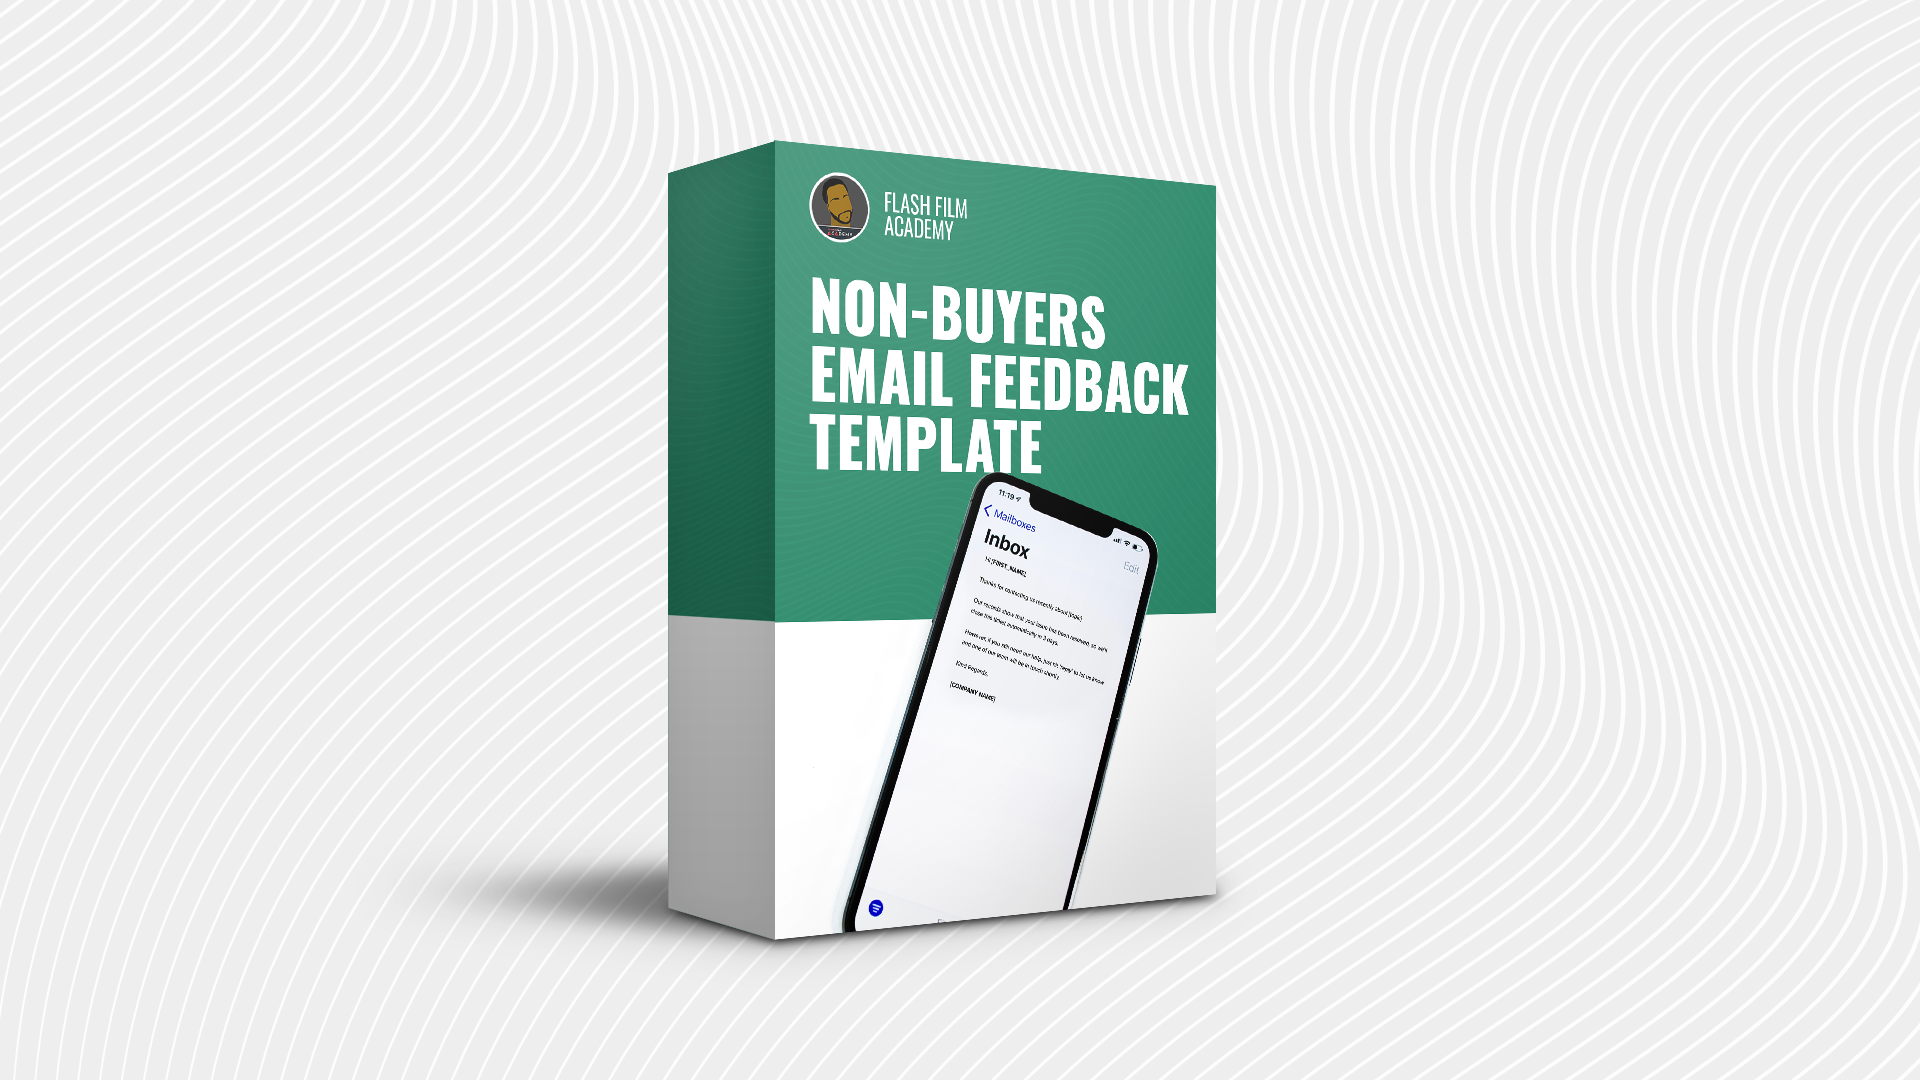 Non-Buyers Email Feedback Template